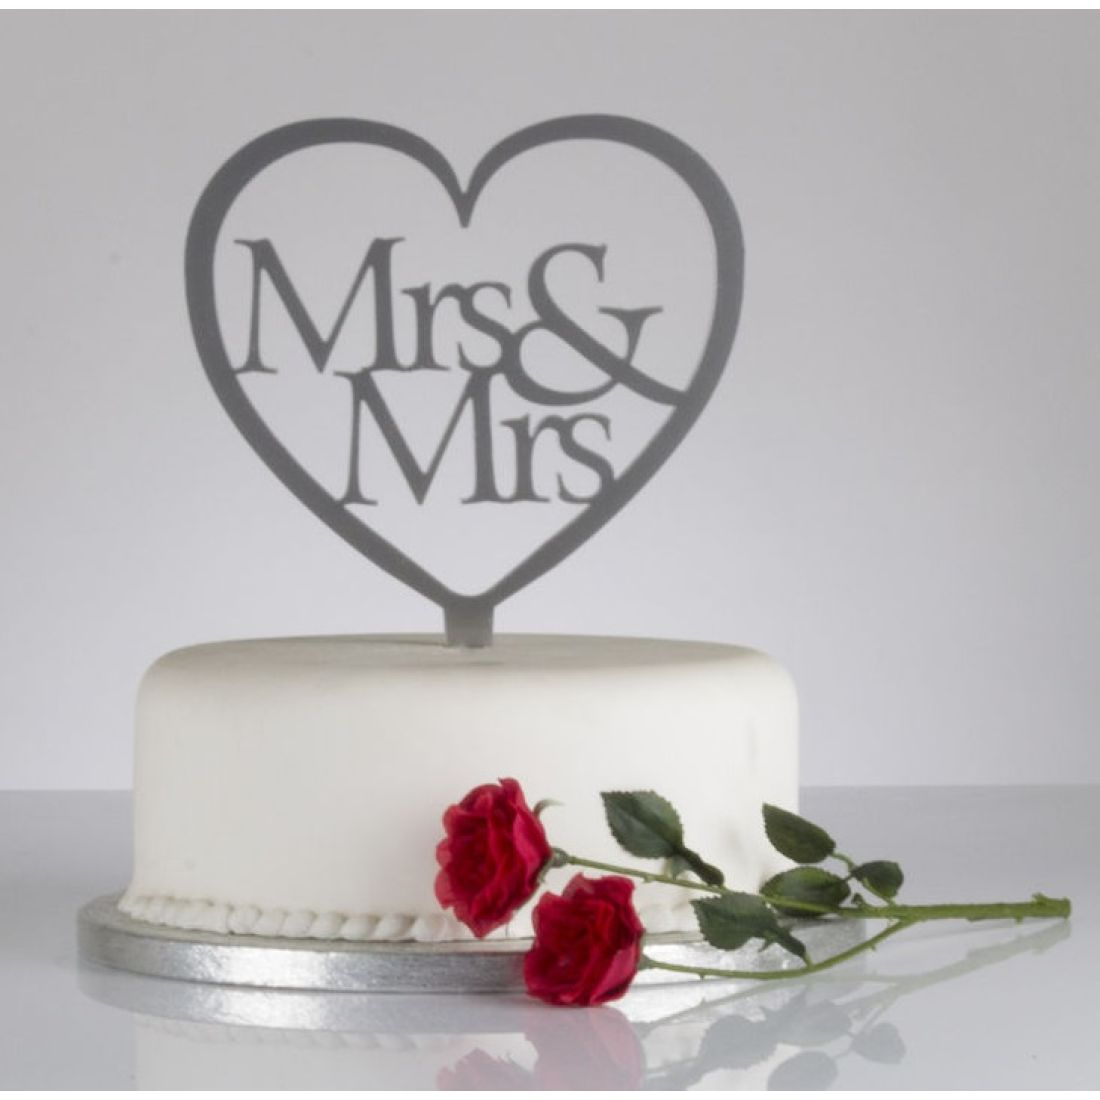 Mrs & Mrs Heart Shaped Cake Topper - Silver | Squires Kitchen Shop